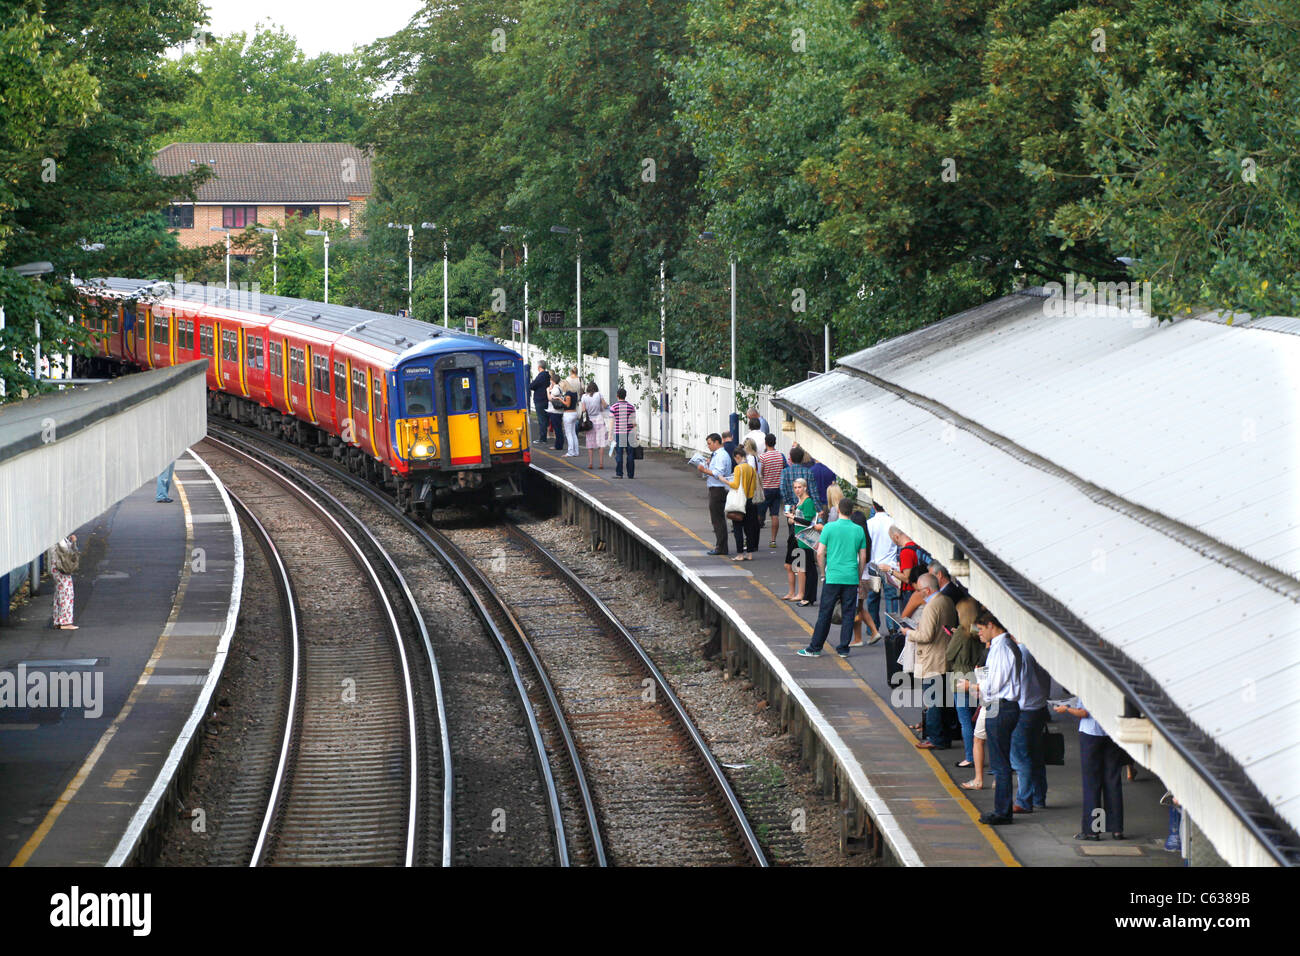 Commuters waiting for the morning train at Mortlake, London - Stock Image